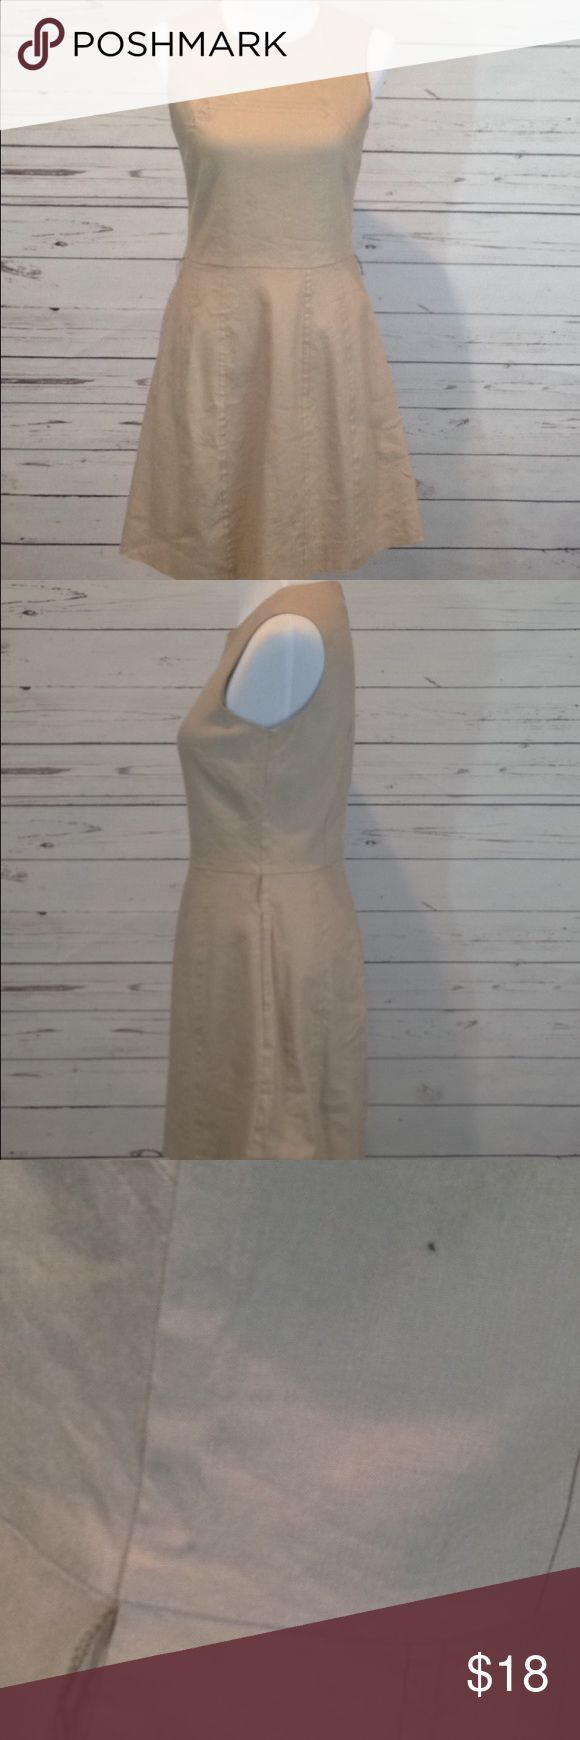 Women's Michael Kors Sleeveless Khaki Dress Size 4 •This dress is new without Tag, it is missing the belt and has 1 spot on the side (see photo) •Khaki color •Fully Lined •Sleeveless •zip up back •Size 4 Petite •Shell: 53% Linen 46% Rayon 1% Spandex •Lining: 100% Acetate MICHAEL Michael Kors Dresses Midi